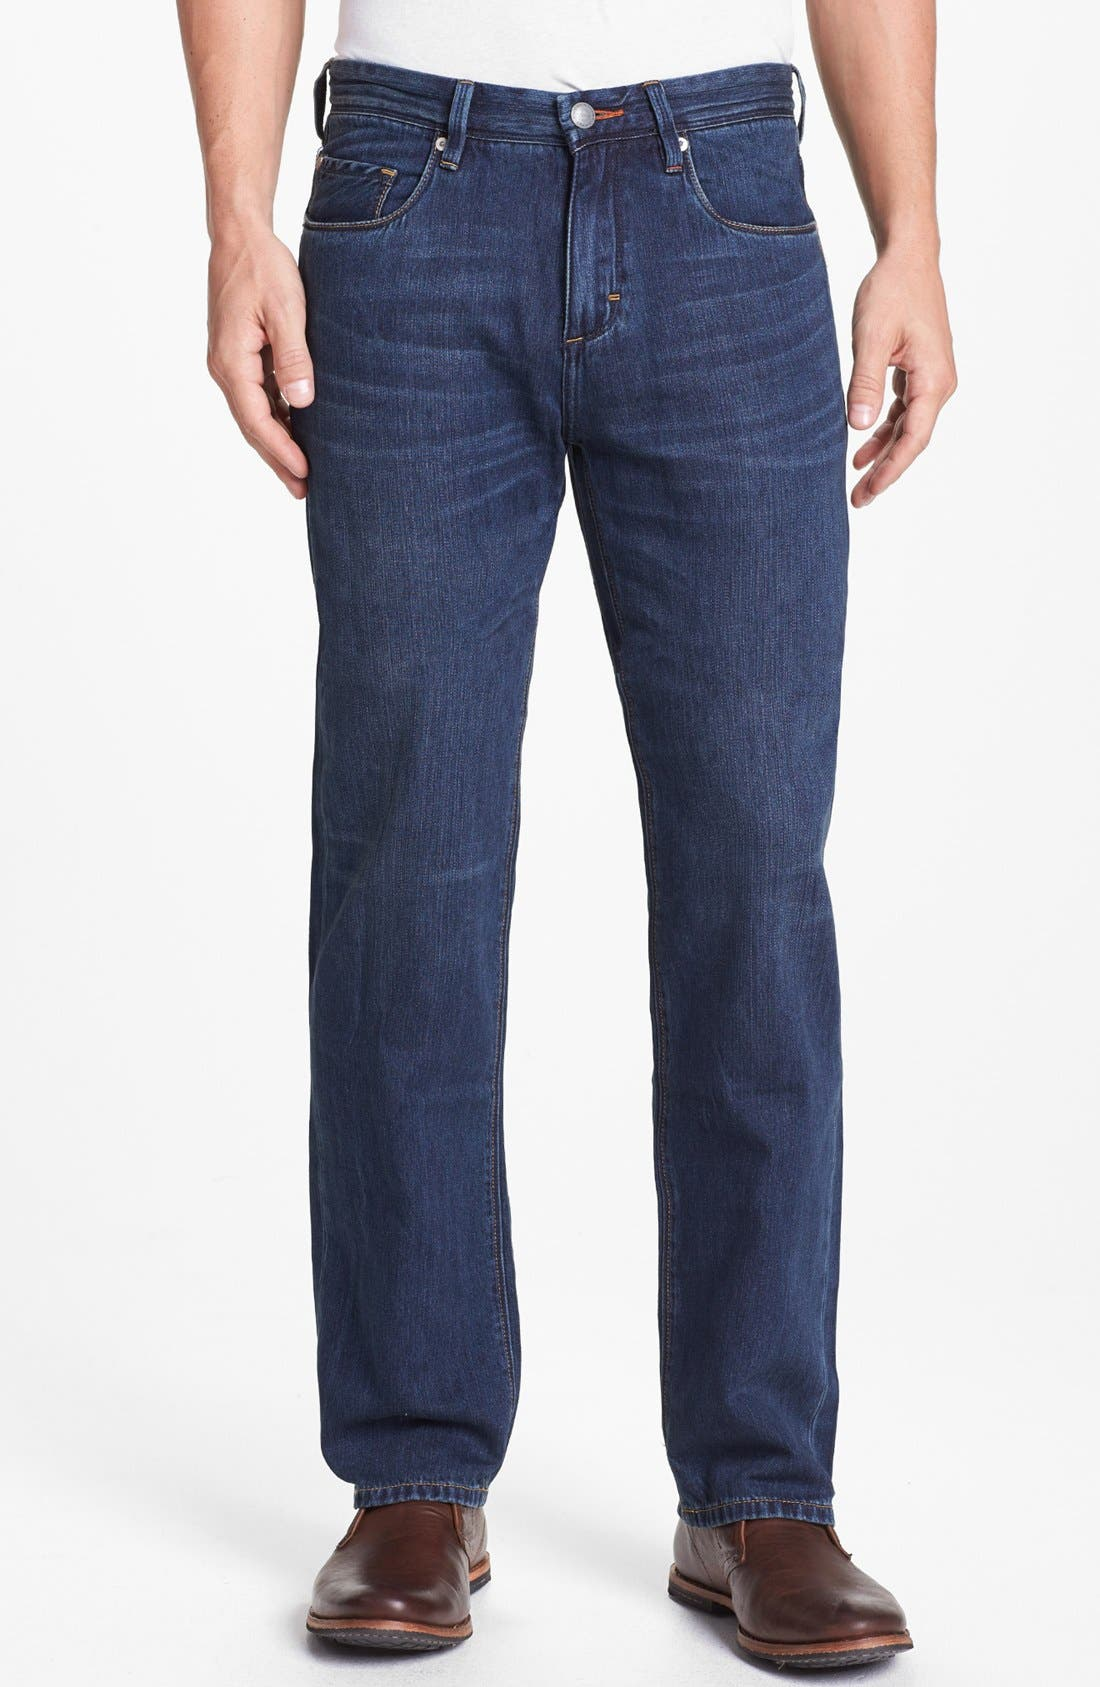 Alternate Image 1 Selected - Tommy Bahama Denim 'Coastal Island' Standard Fit Jeans (Dark Storm)